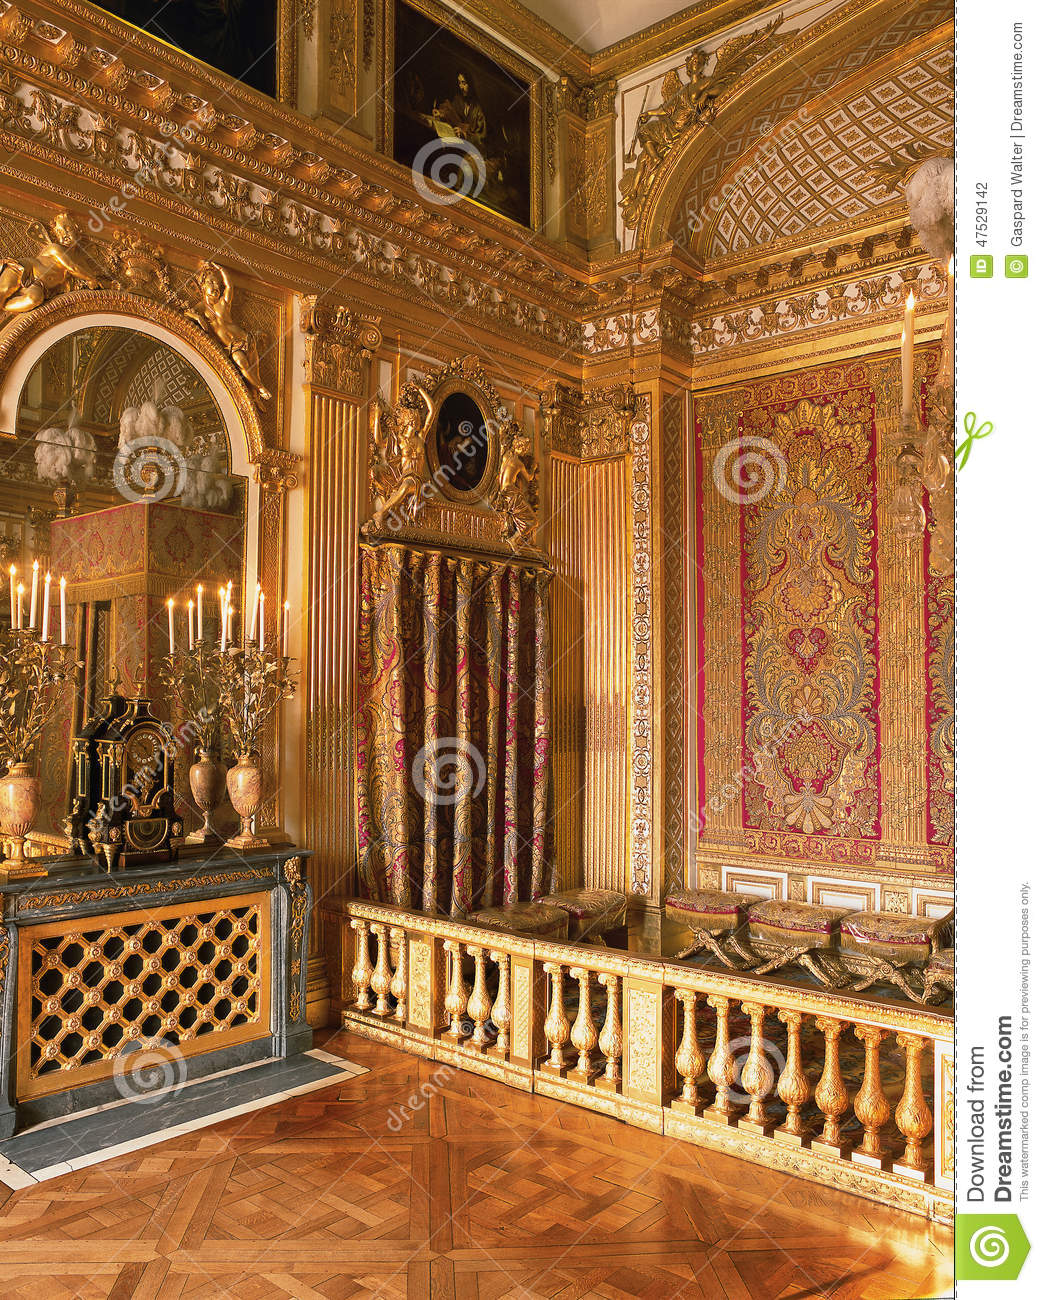 King Louis XIV Bedroom At Versailles Palace France